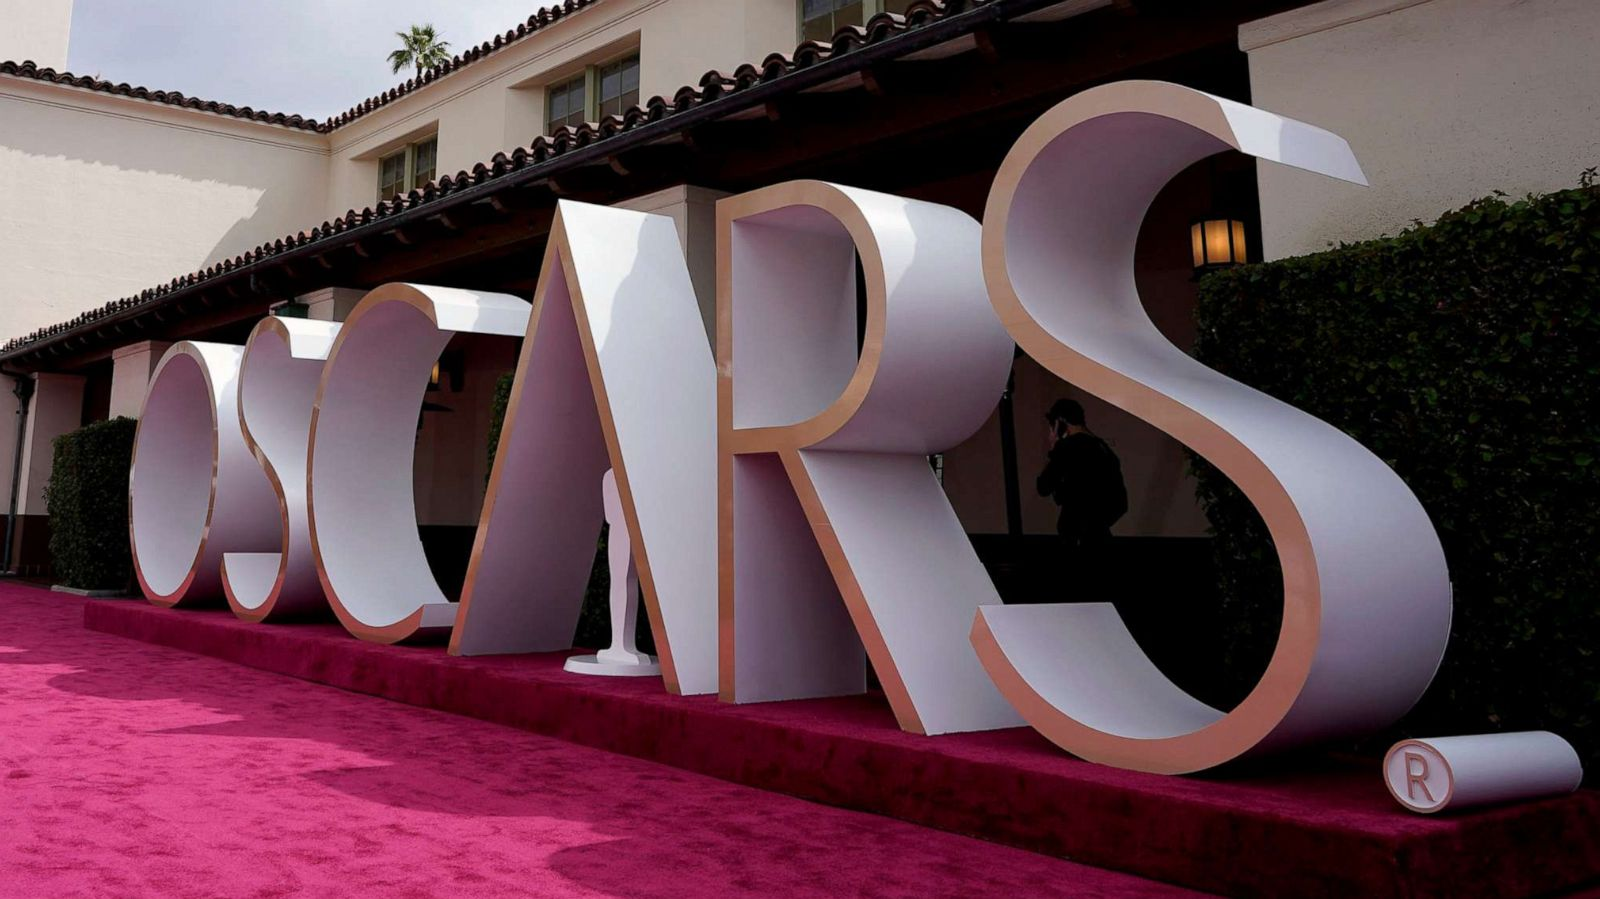 Oscars 2021 live updates: Winners, speeches and top moments